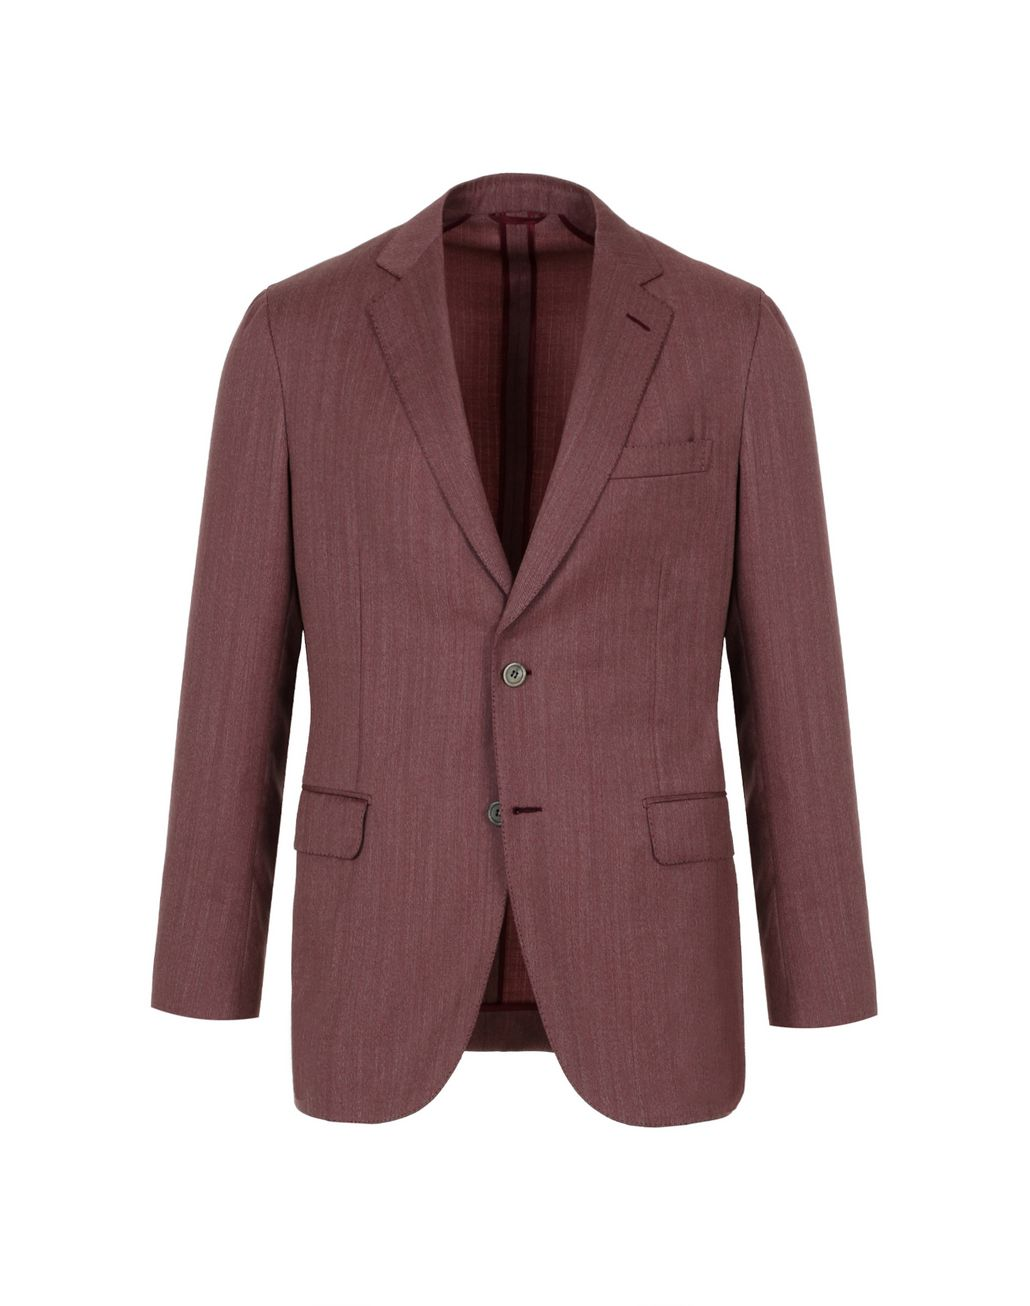 BRIONI Bordeaux Herringbone Plume Jacket Suits & Jackets Man f